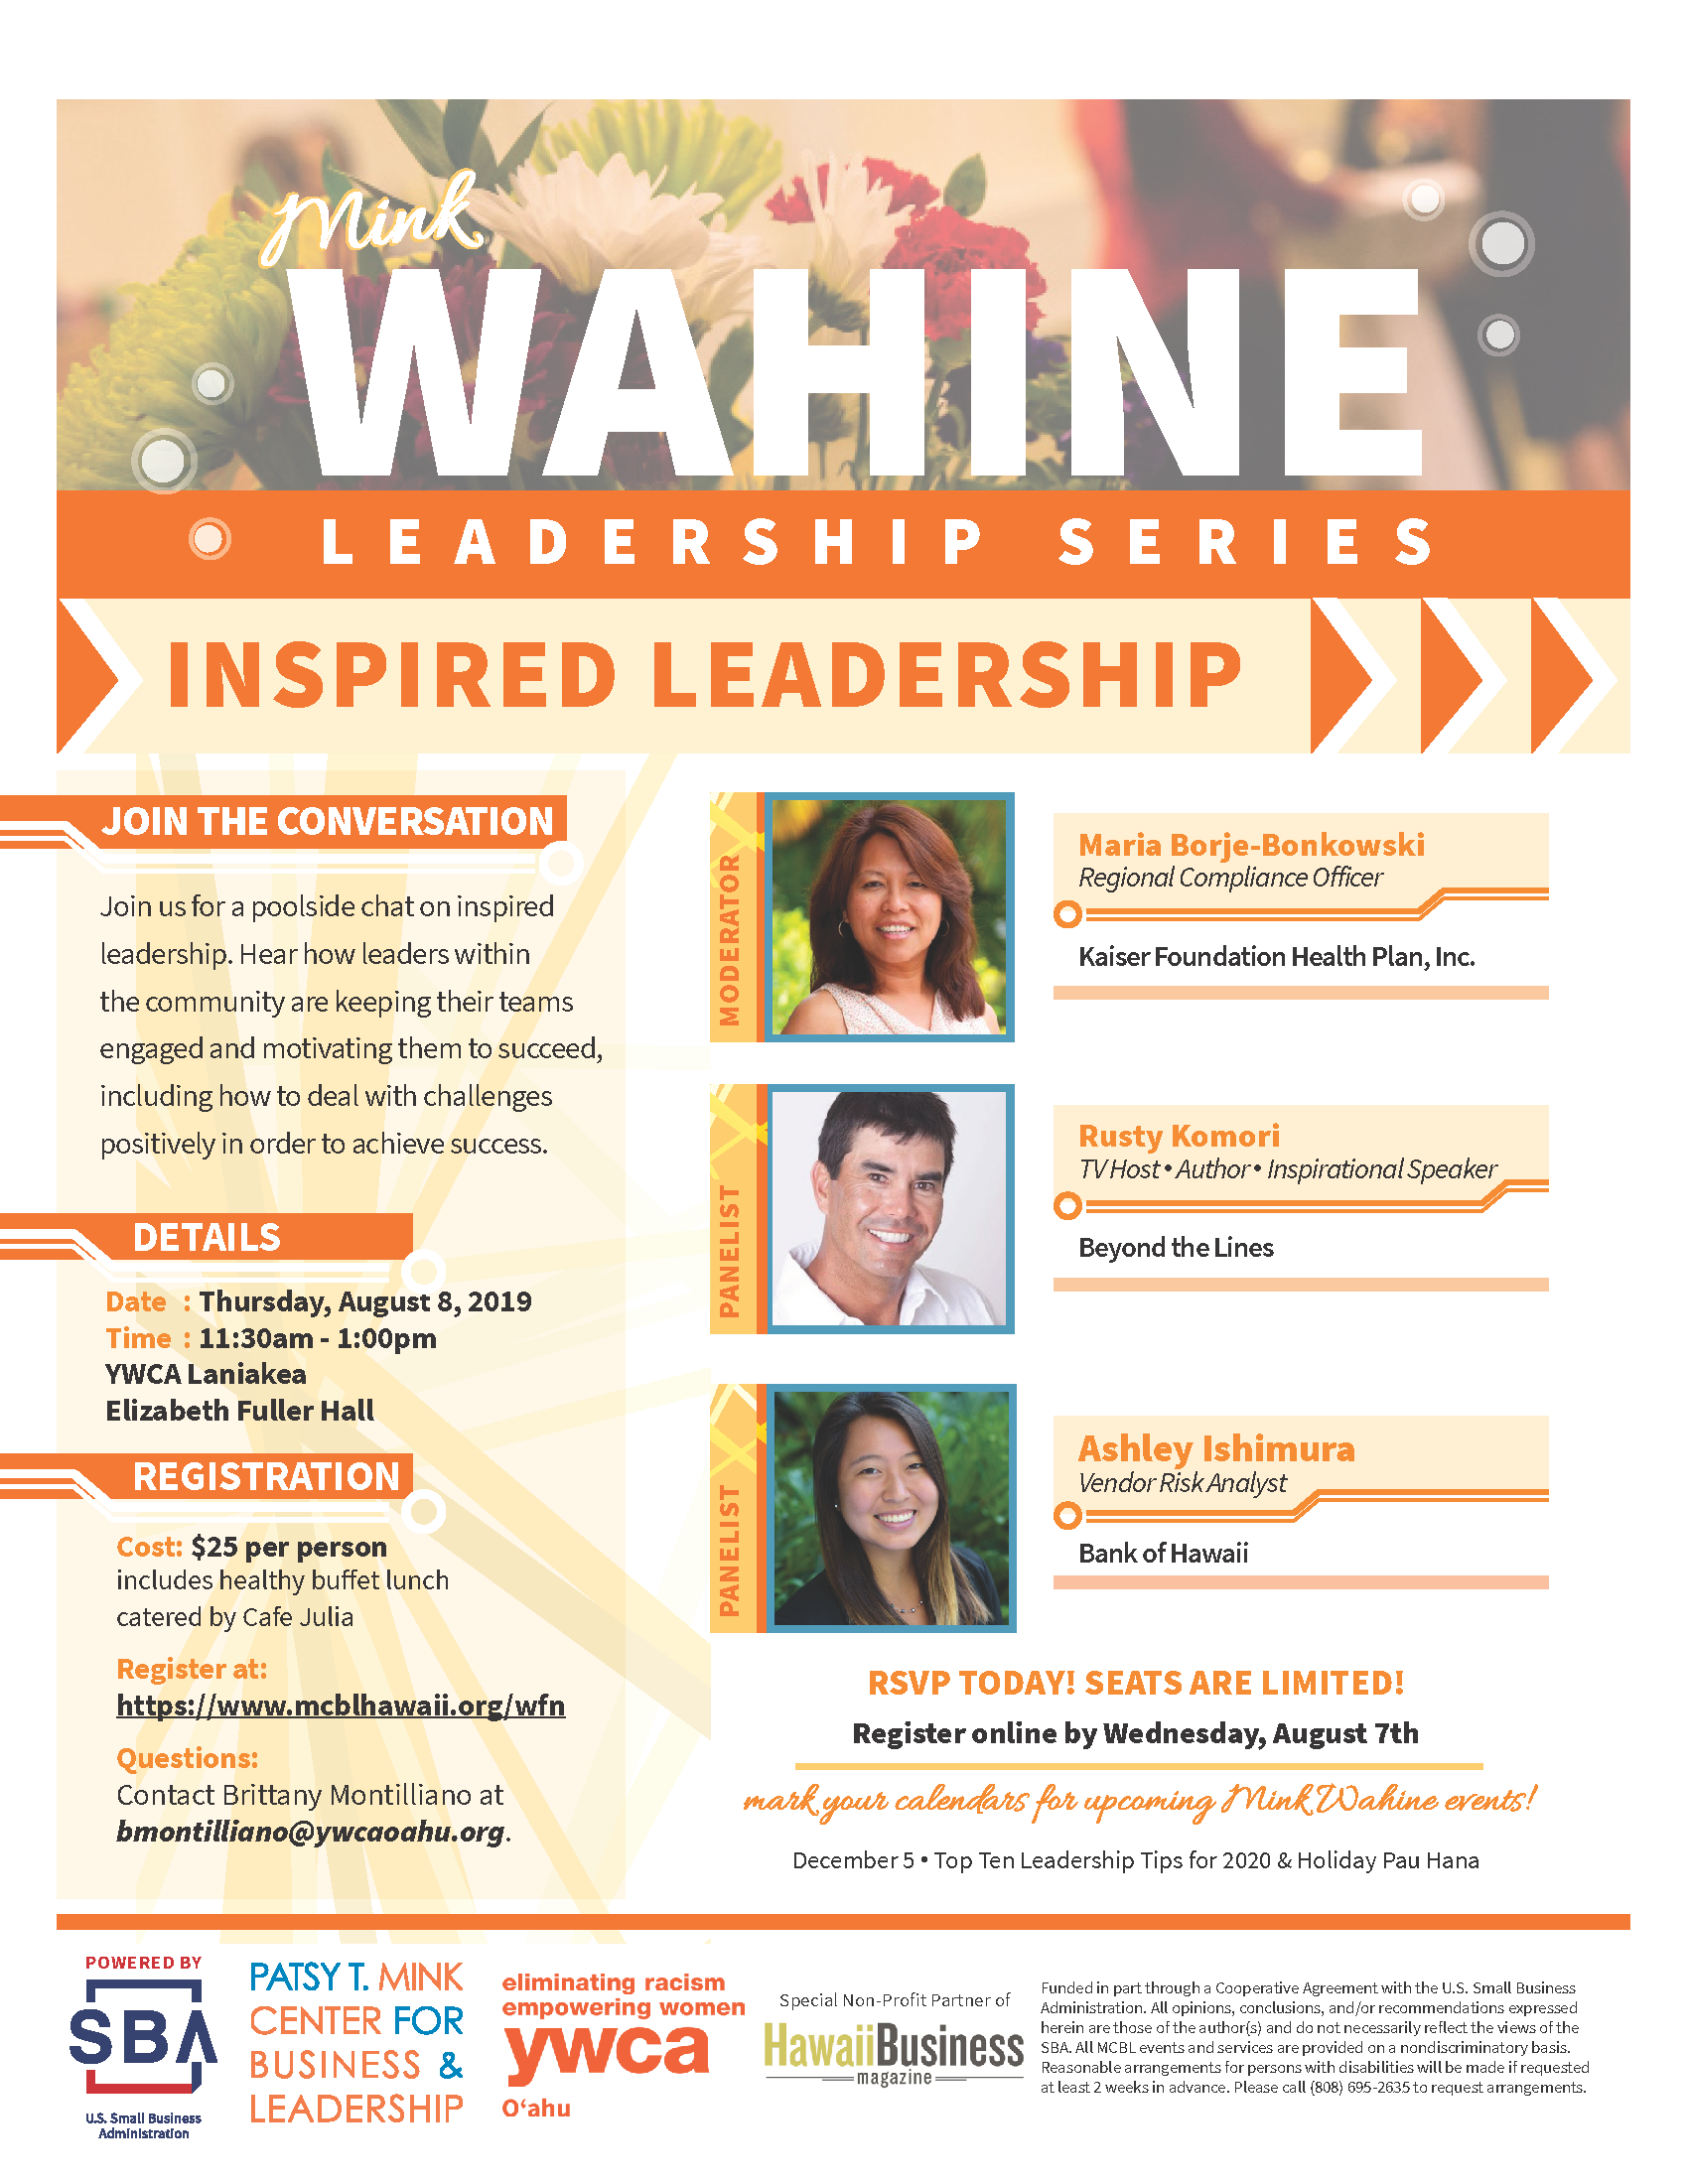 WFN - Inspired Leadership - 8.8.19 (002).png